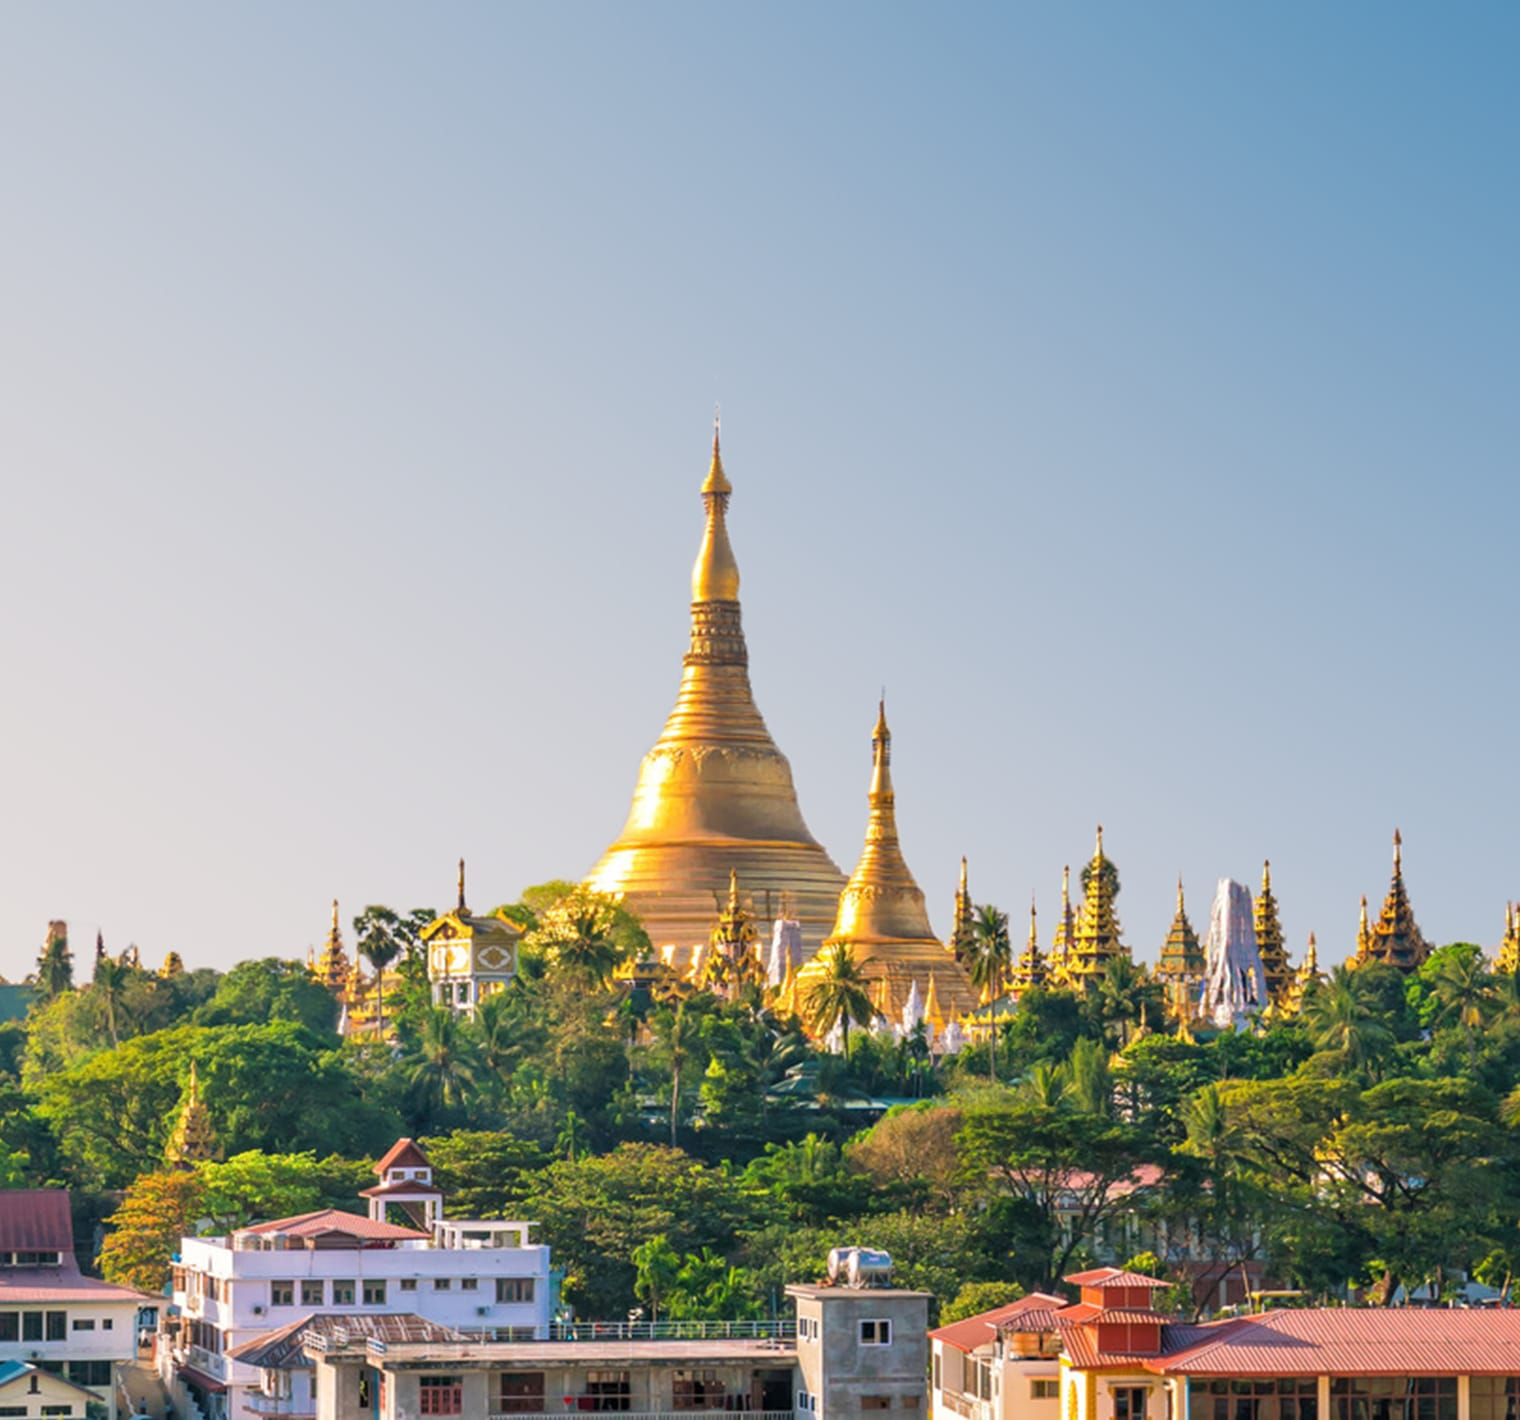 Market research and validation services in Myanmar